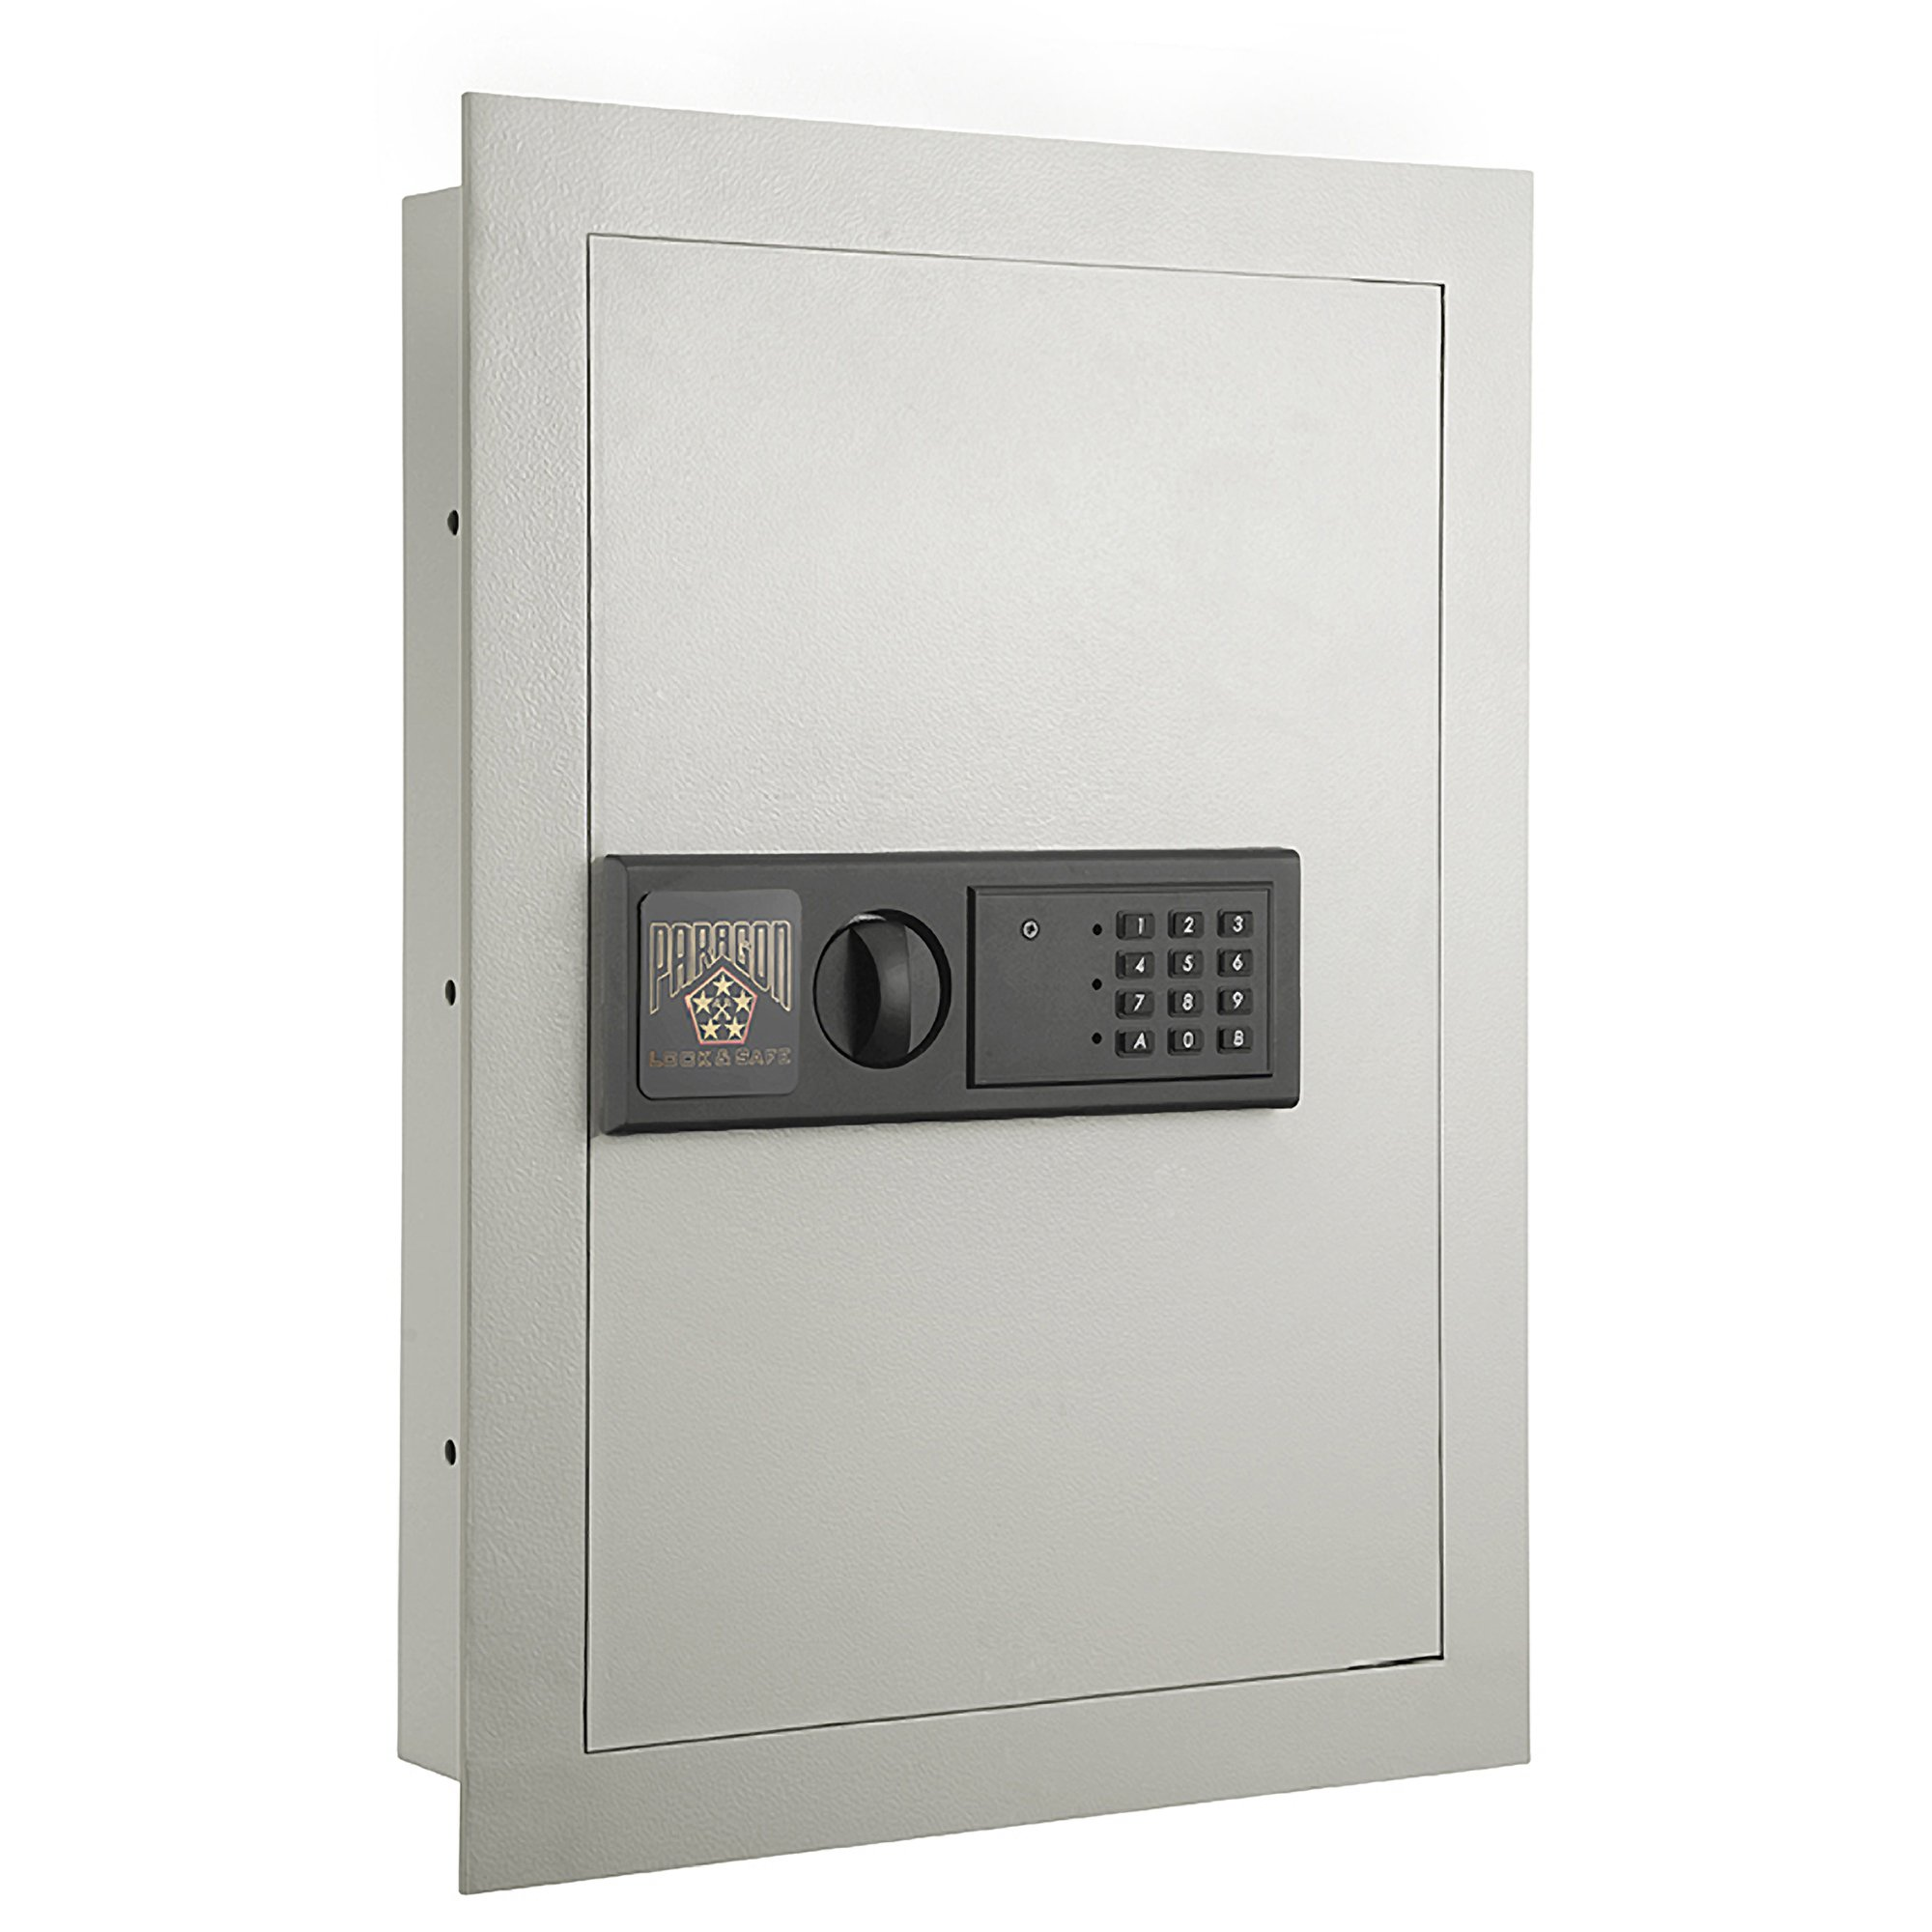 Paragon 7750 Electronic Wall Lock and Safe.83 CF Hidden In Wall Large Safe